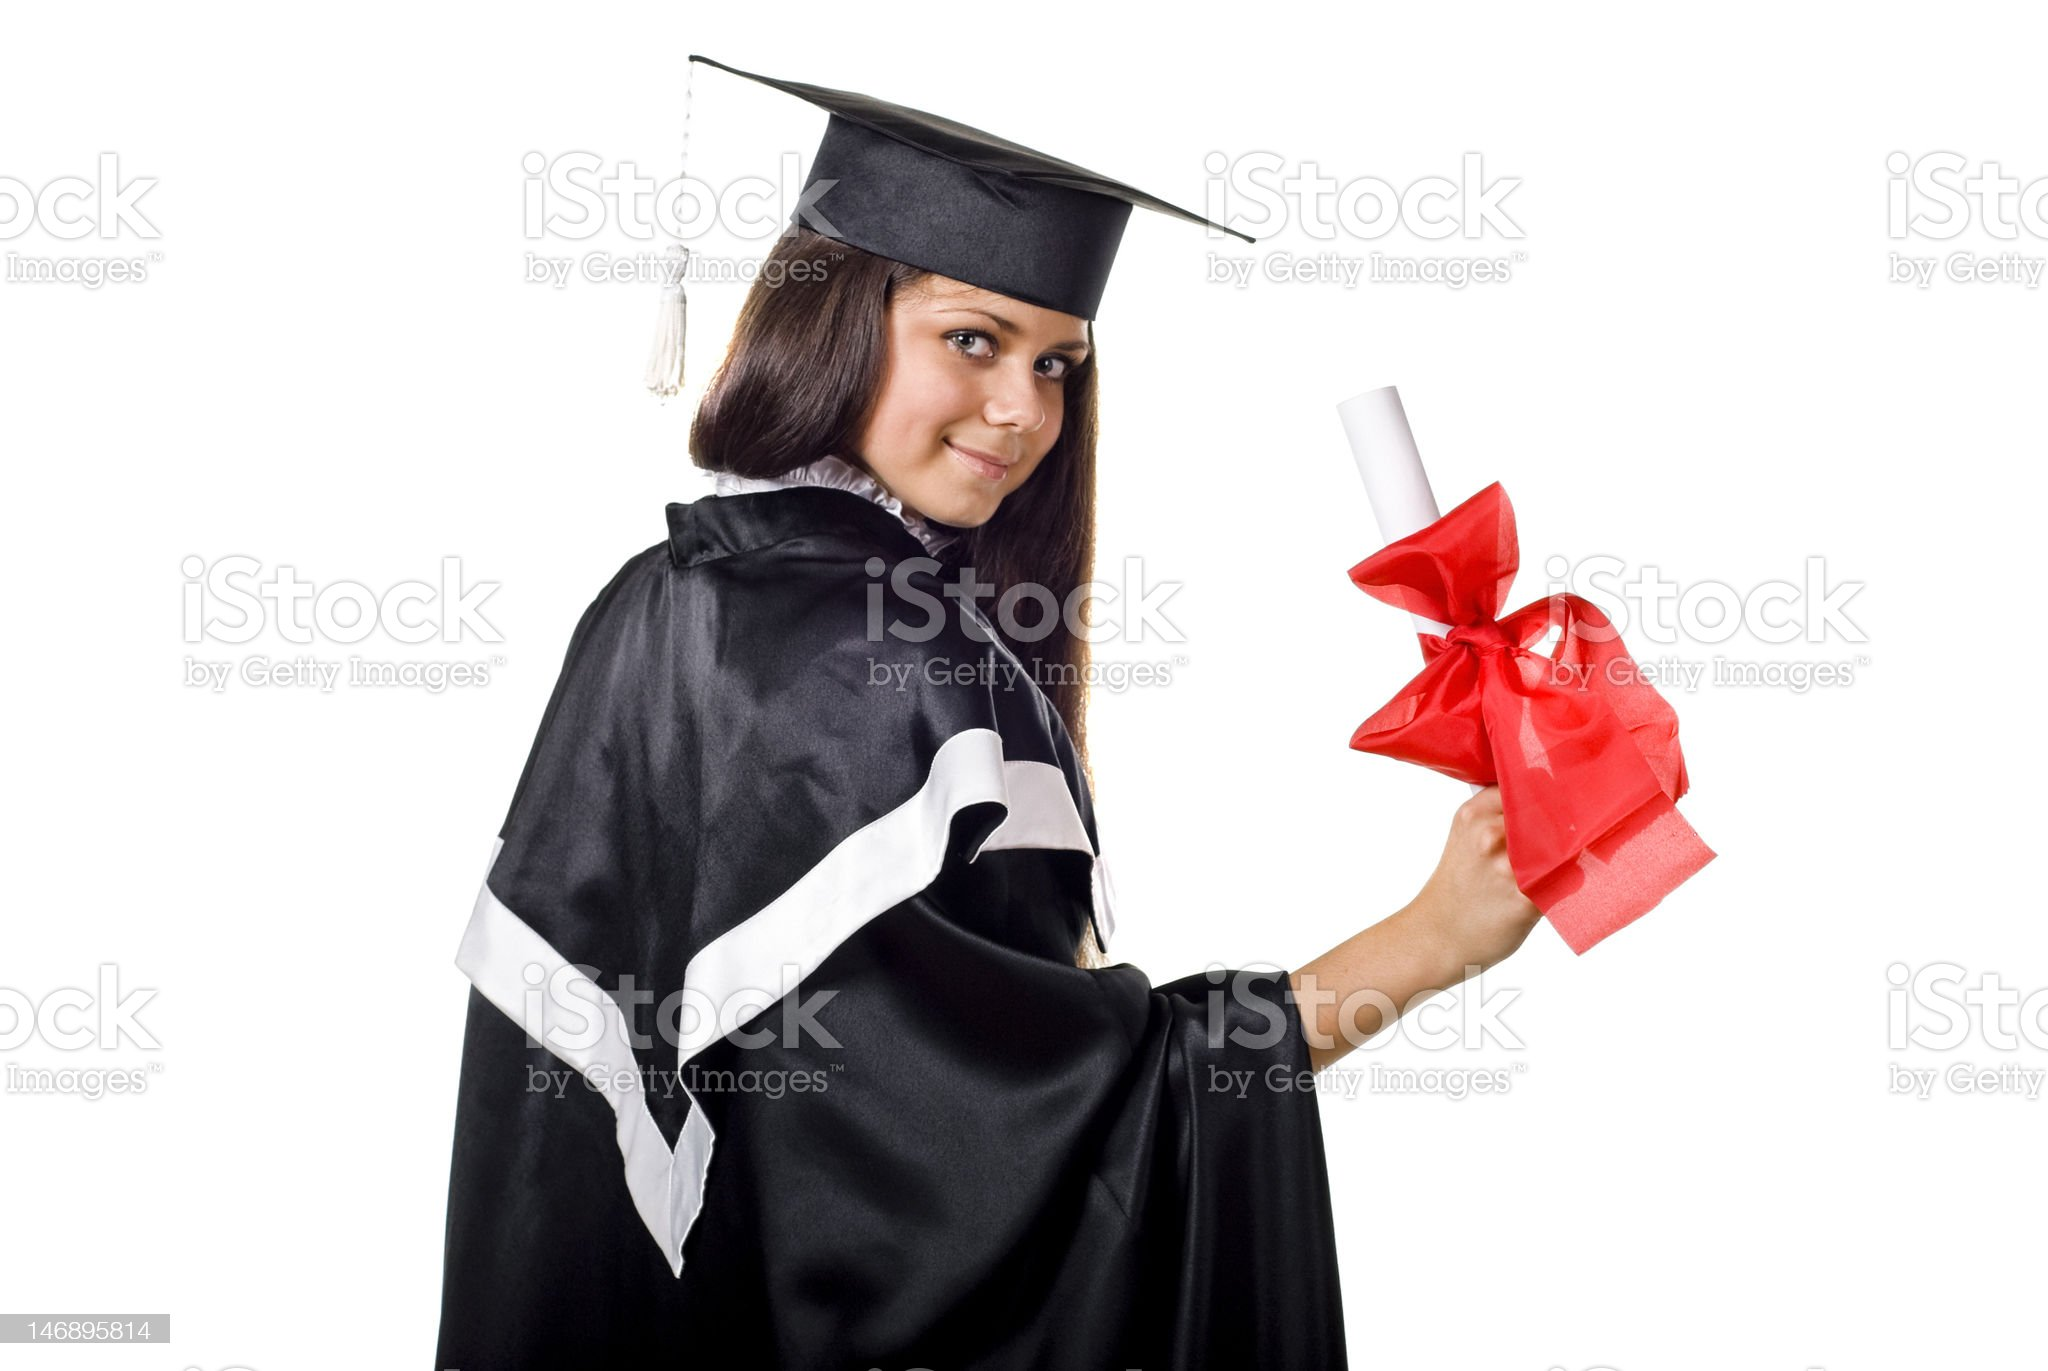 Cute Graduate with Certificate royalty-free stock photo